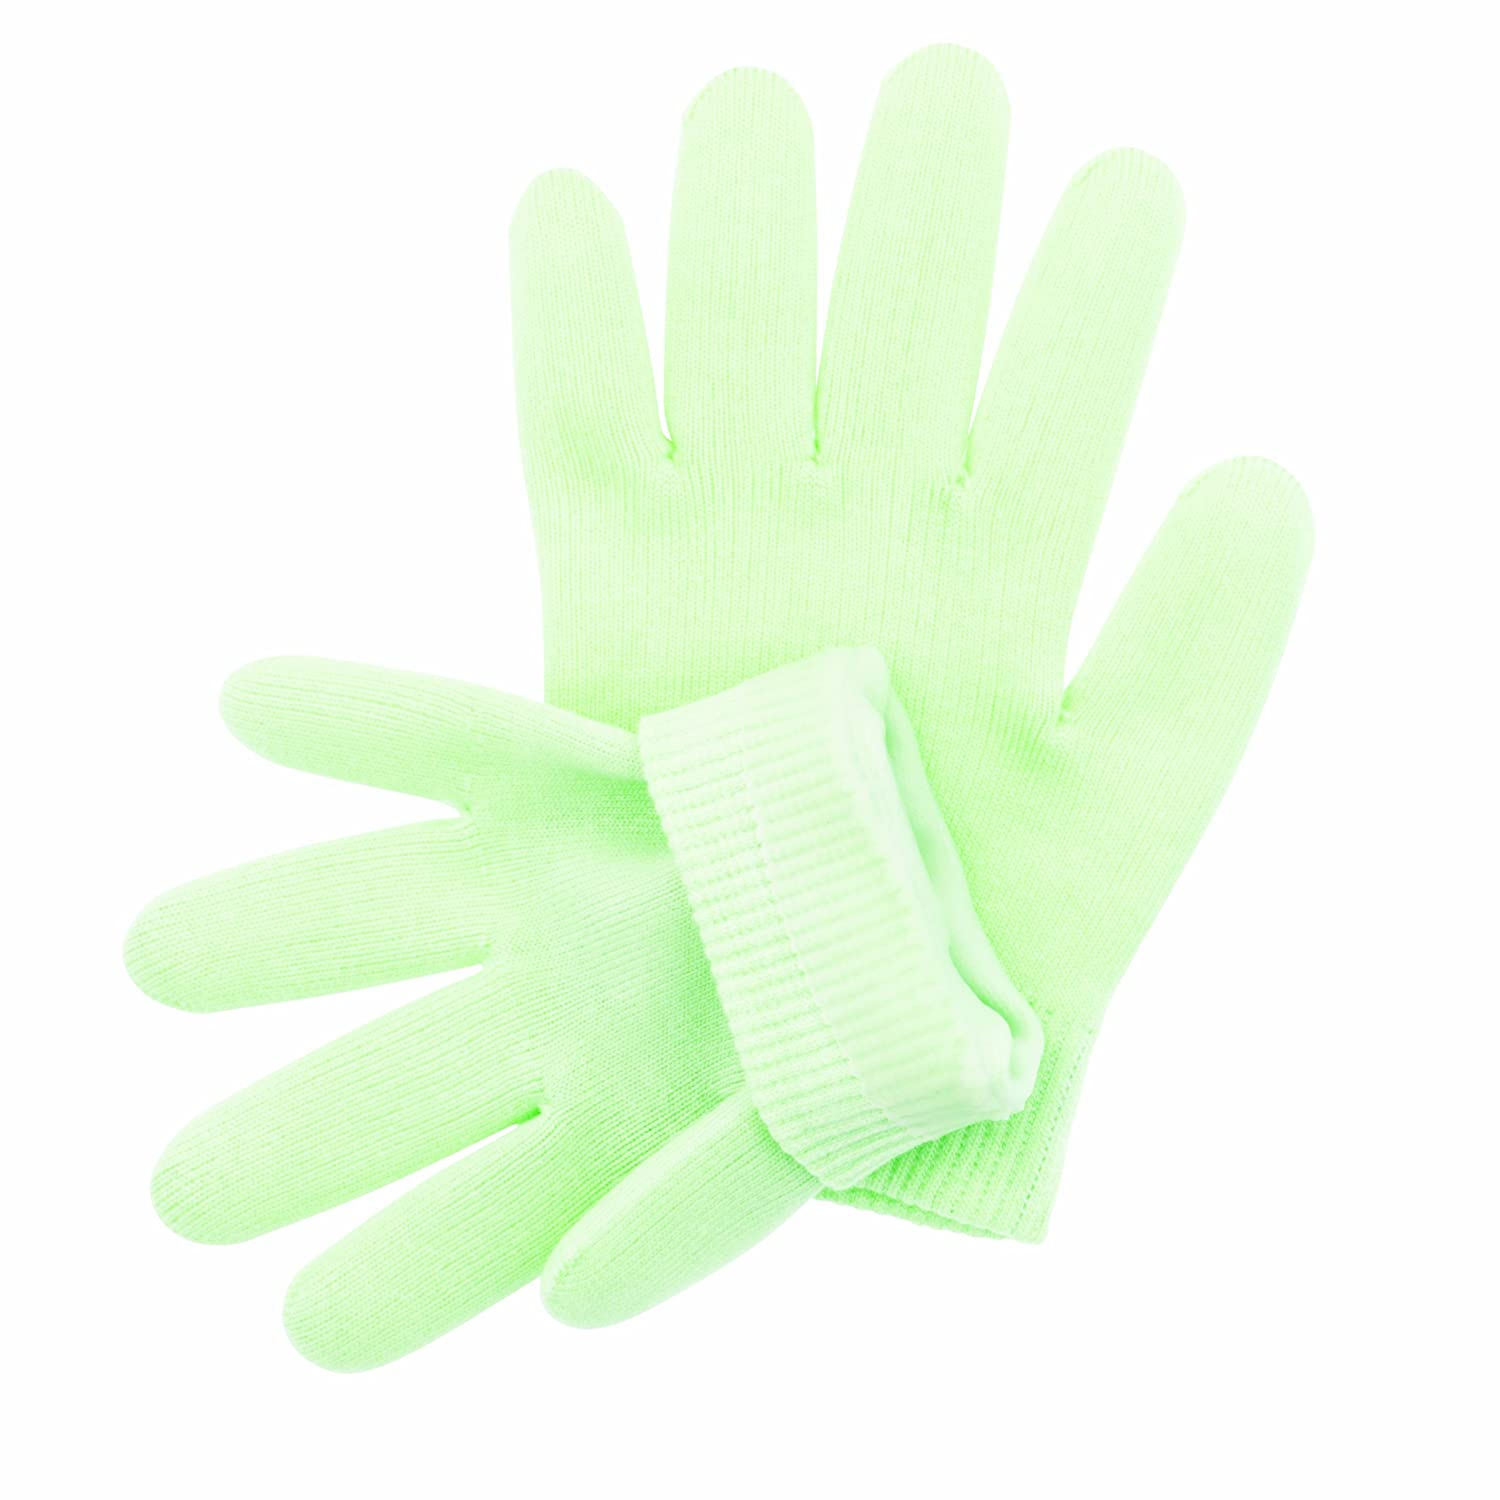 Accessories By Upper Canada 766602 Moisturizing Gel Spa Gloves, Green Upper Canada Soap